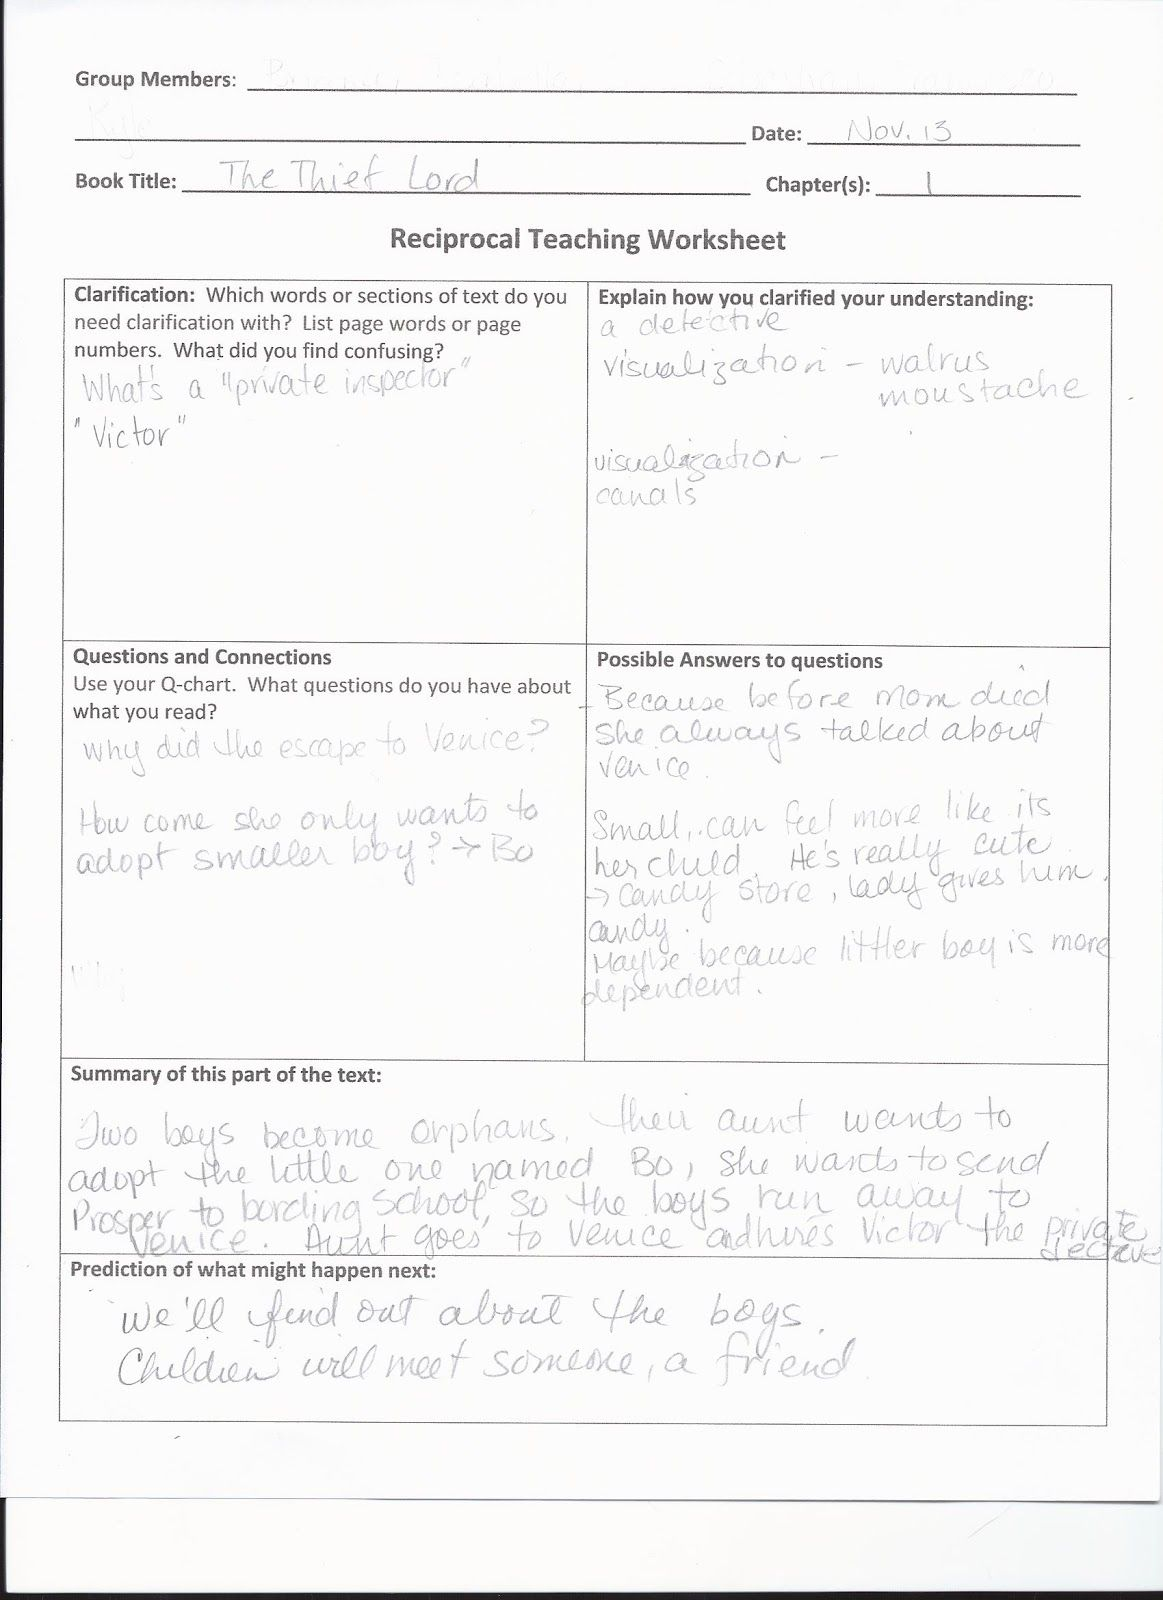 Image Result For Reciprocal Teaching Worksheet